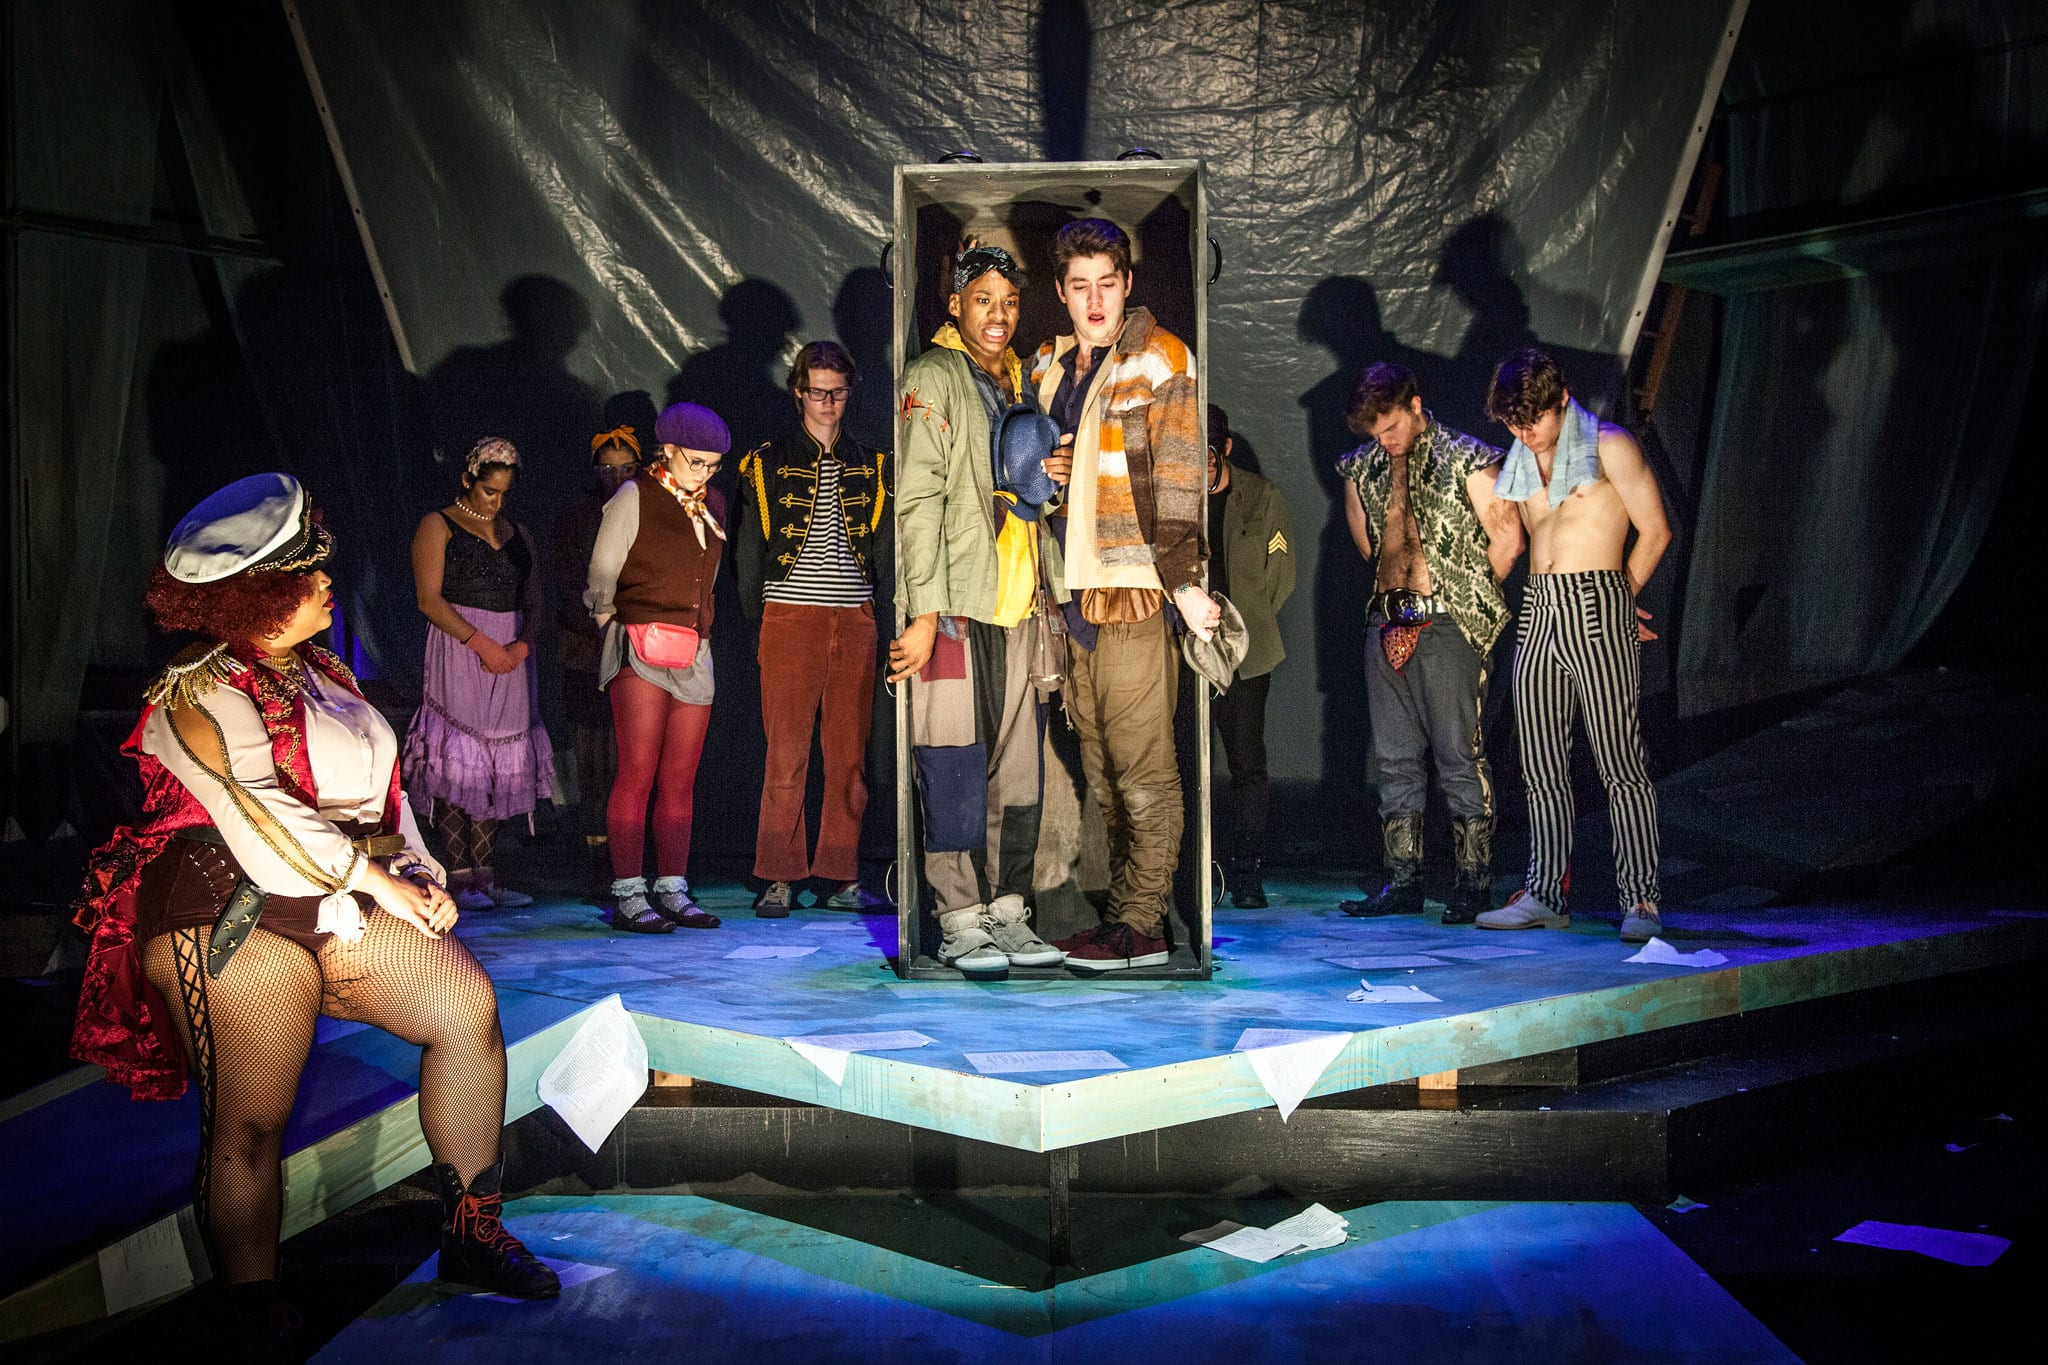 """10 Can't Miss Photos from SMU Theatre's Production of """"Rosencrantz and Guildenstern Are Dead"""" by Tom Stoppard"""